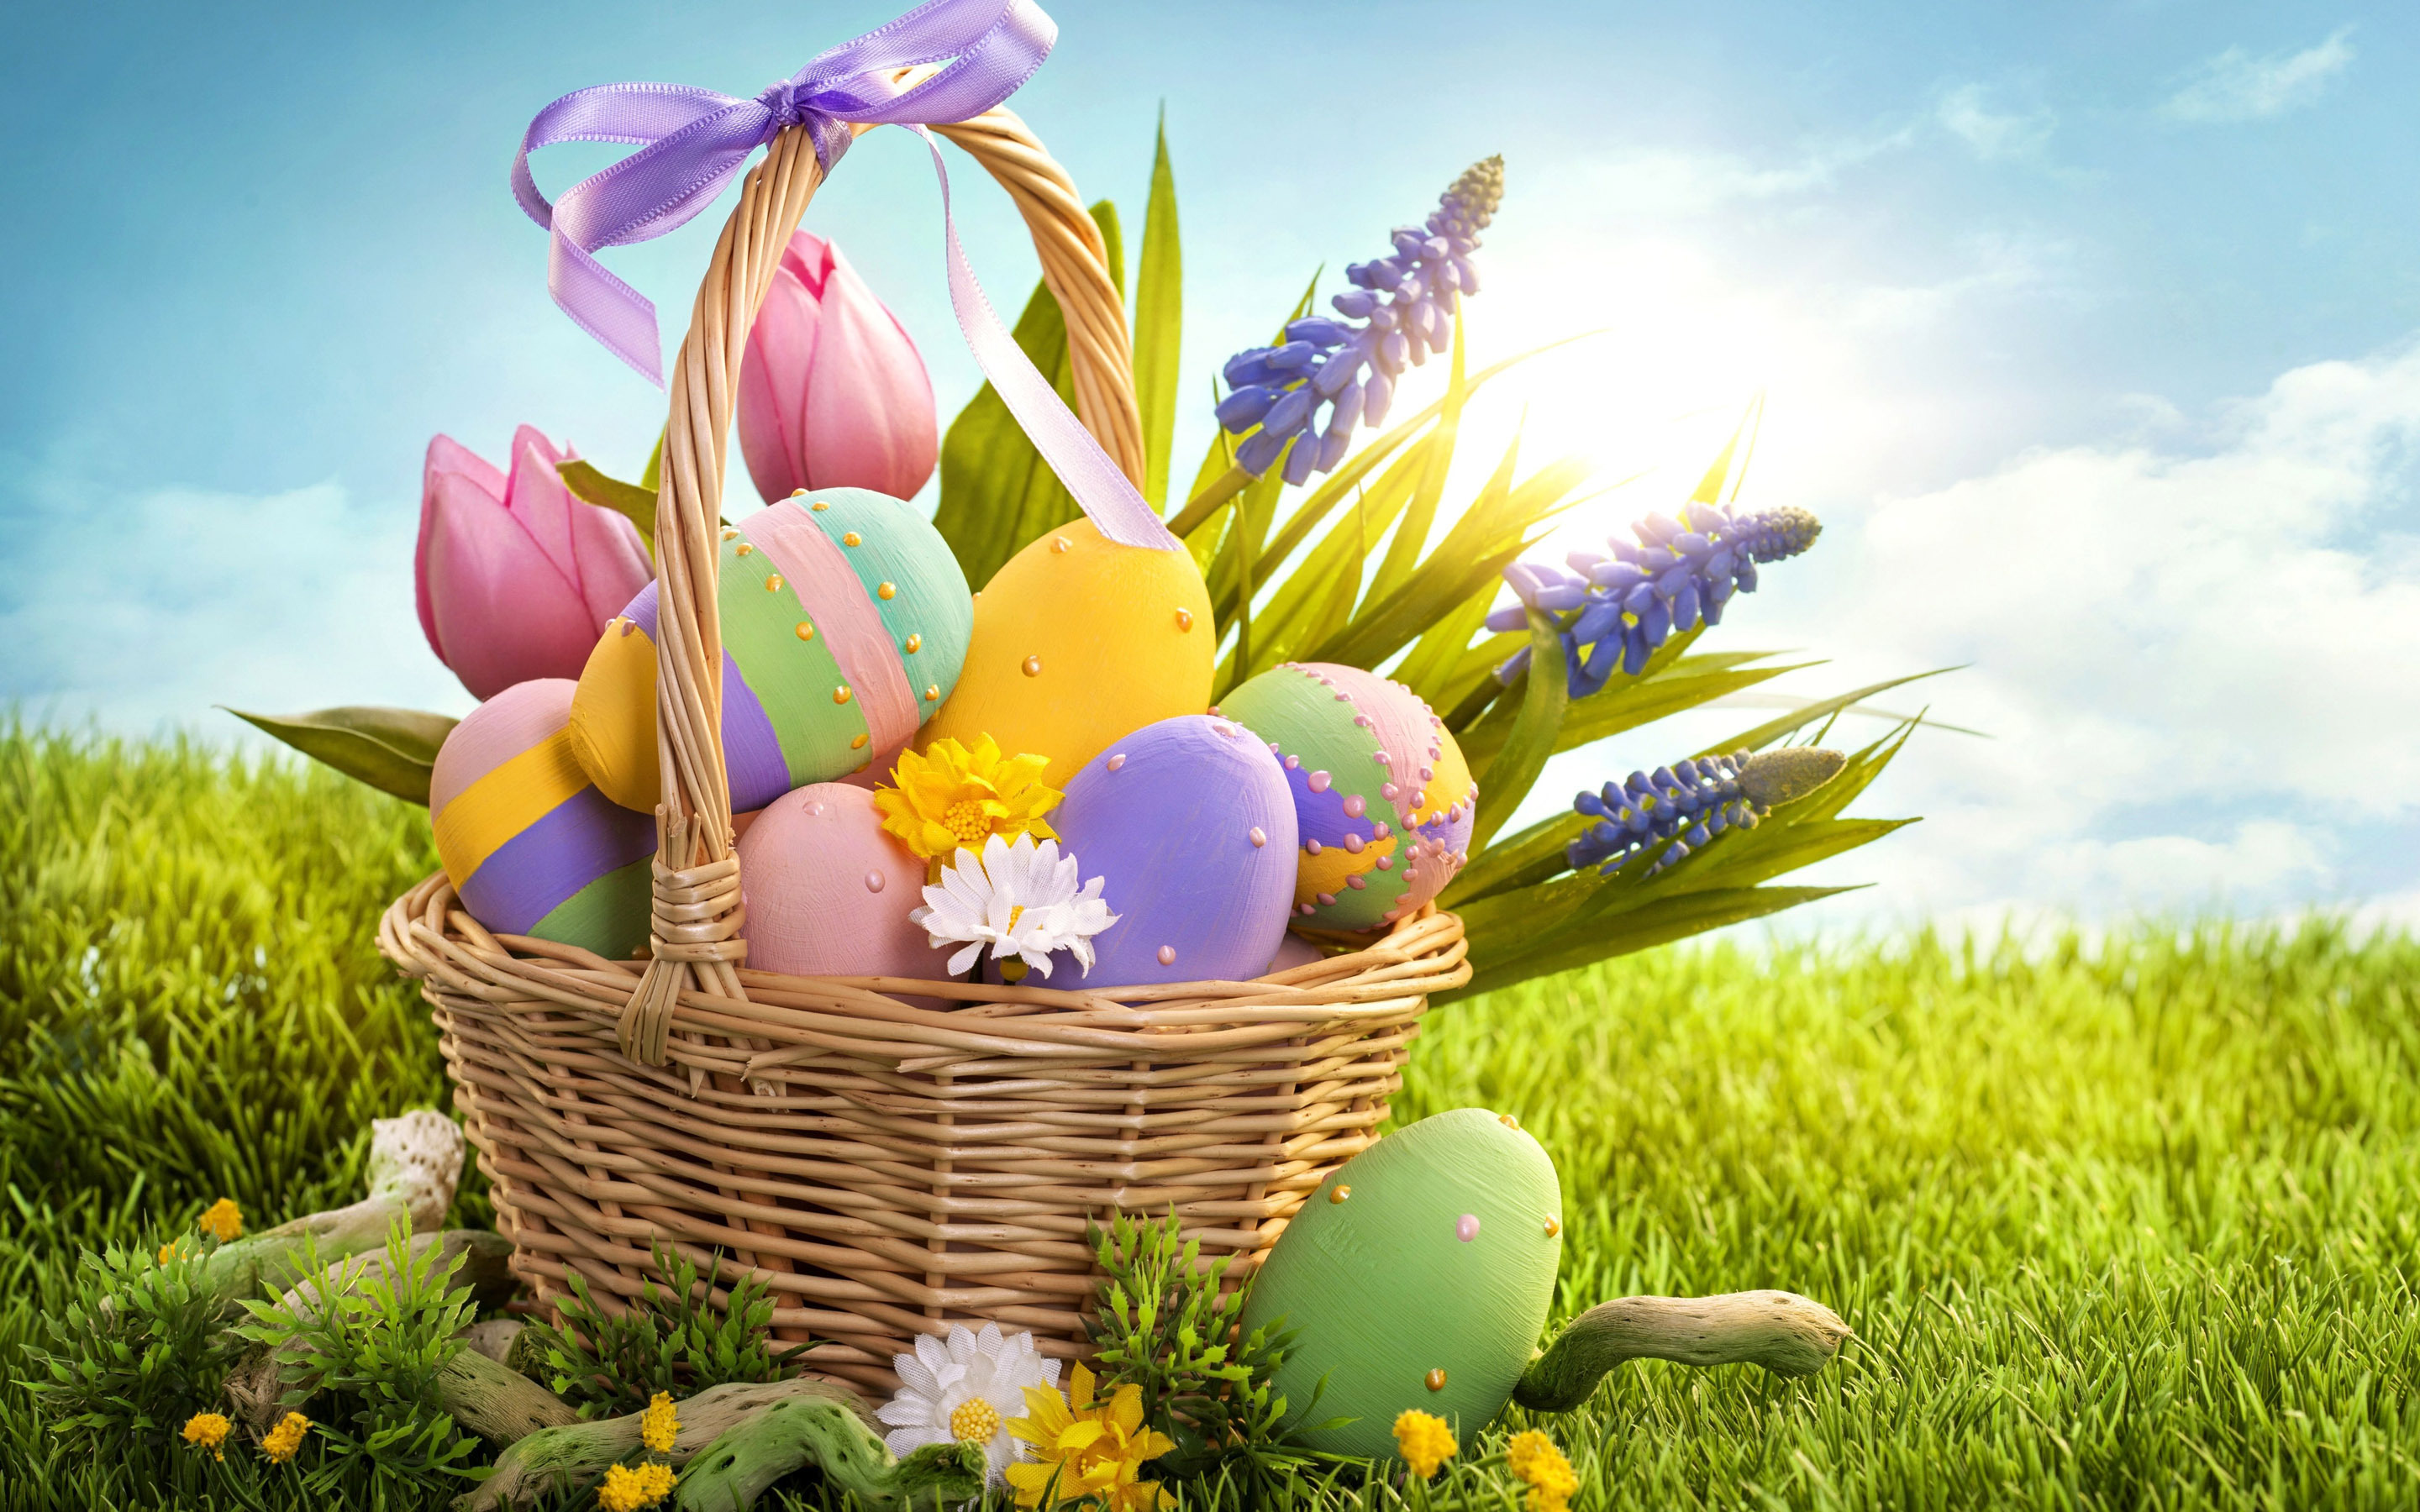 easter-wallpaper-hd-40284-41224-hd-wallpapers.jpg